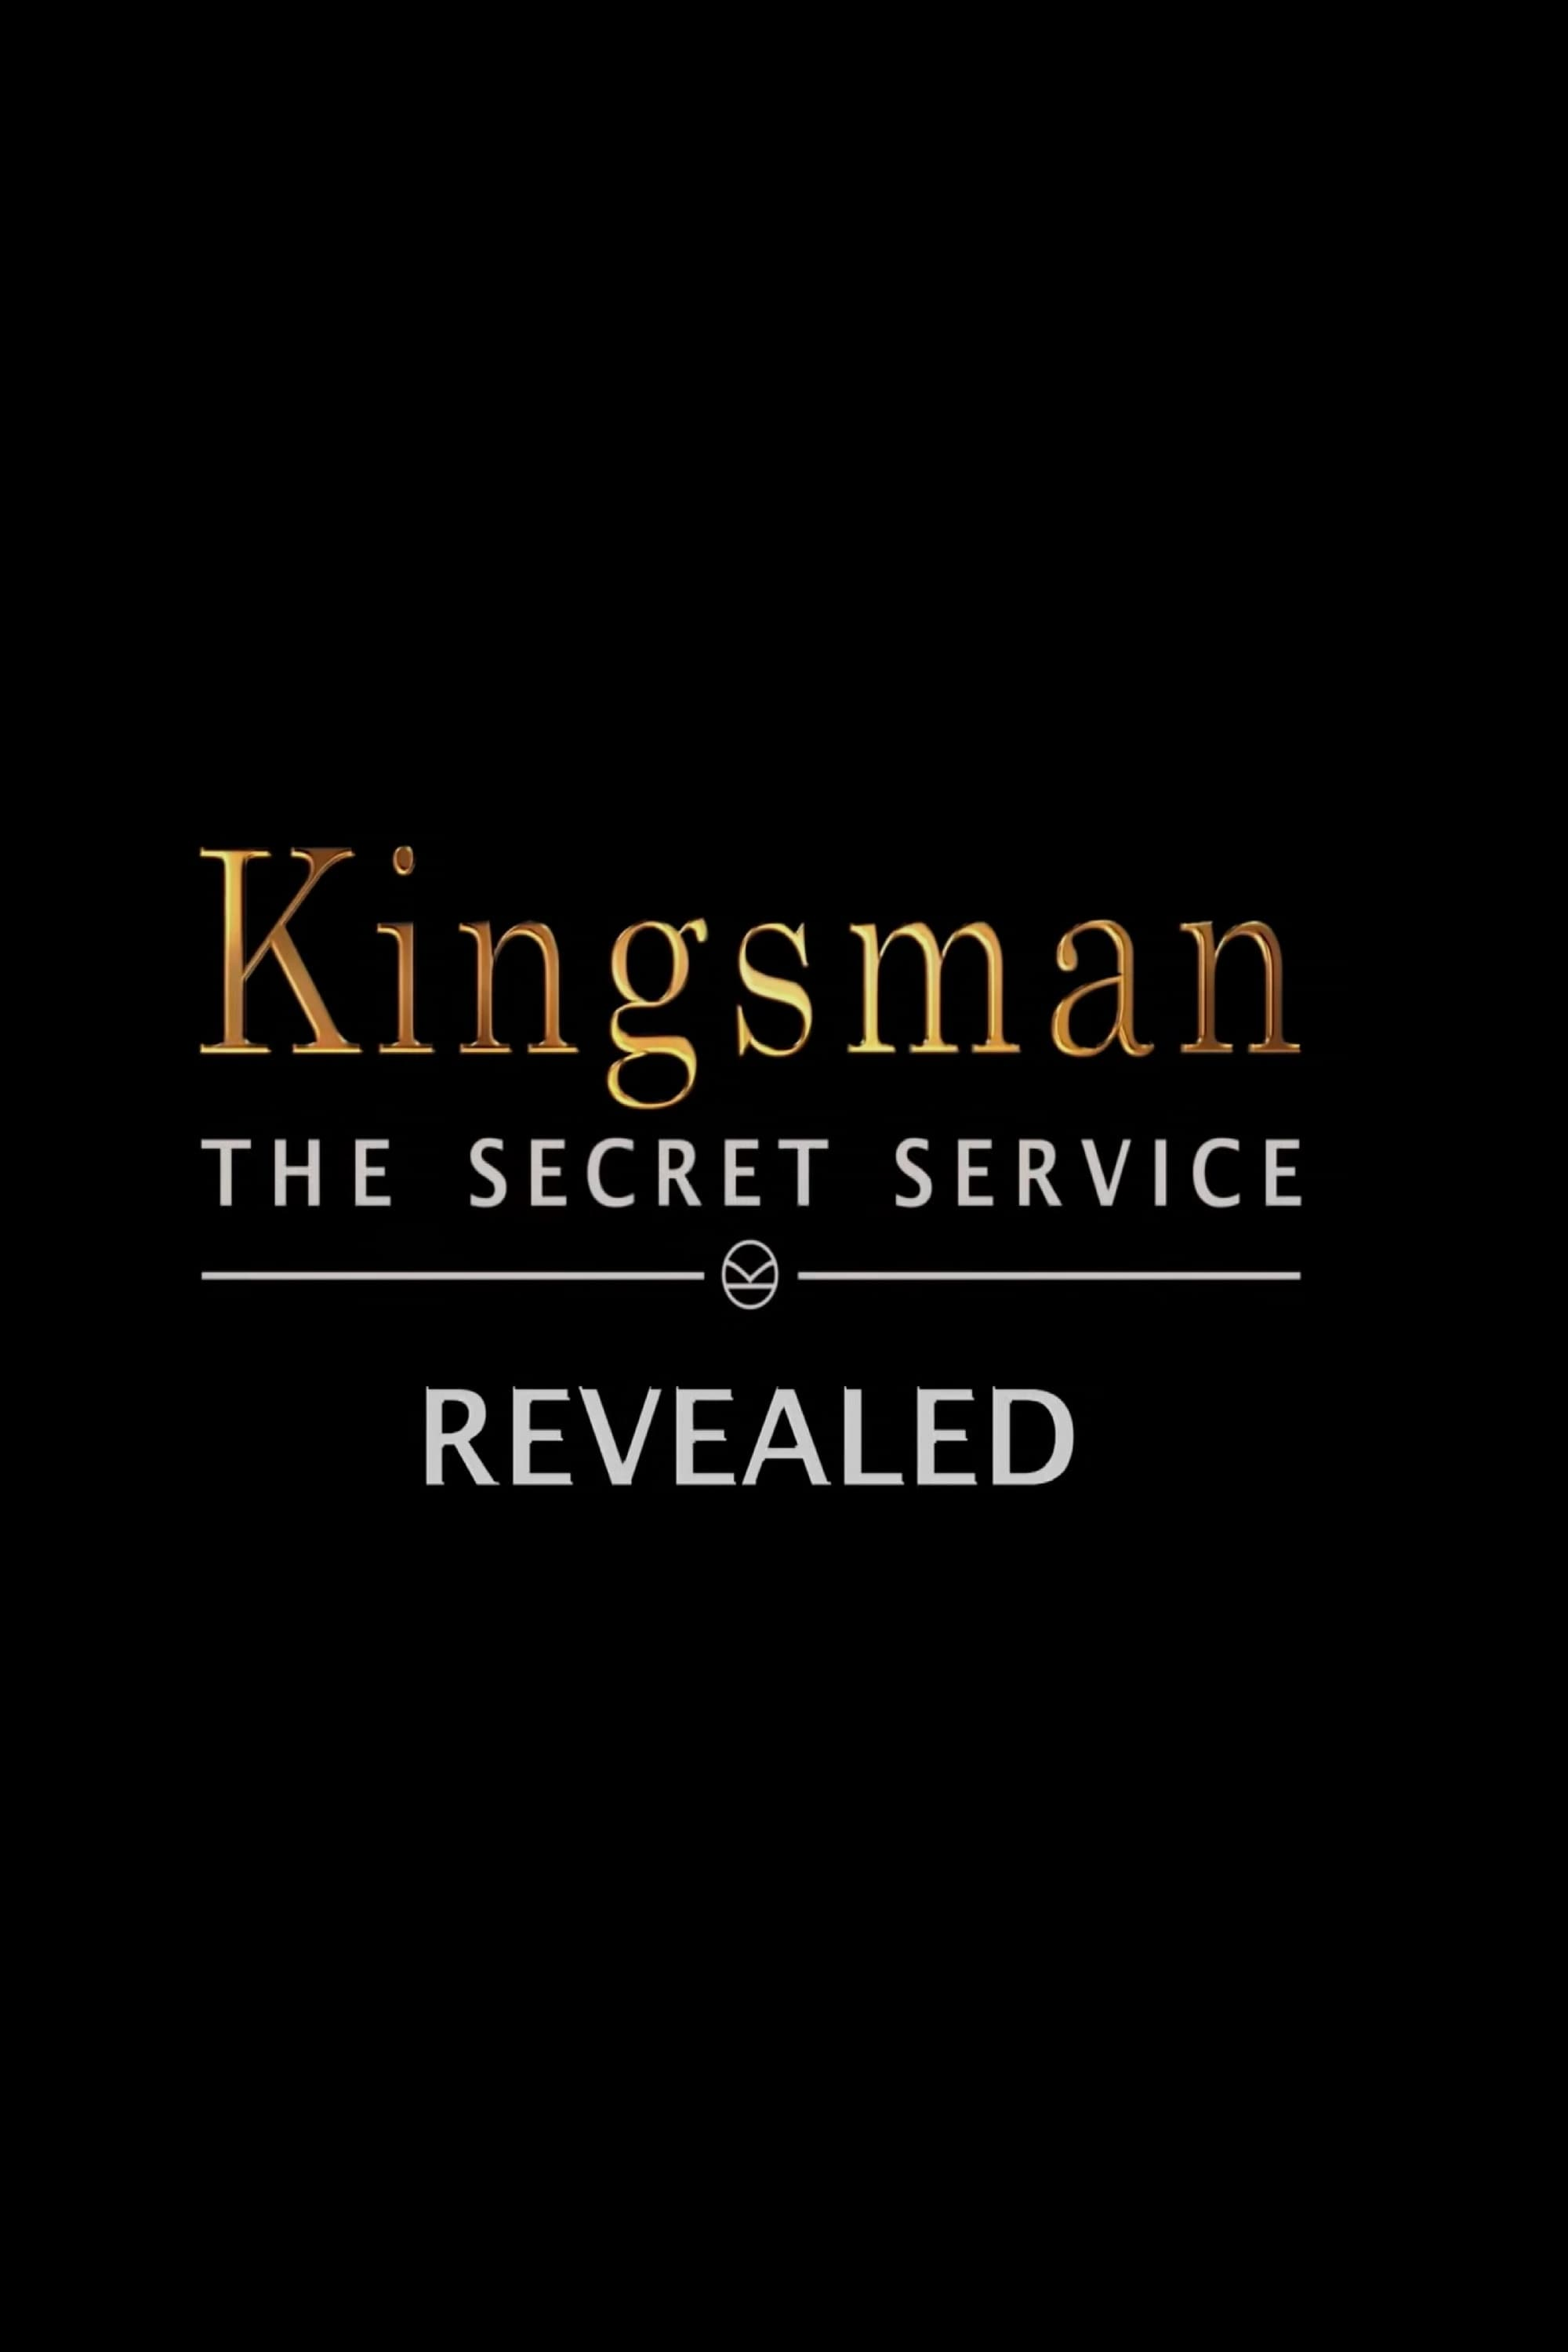 Kingsman: The Secret Service Revealed (2015)